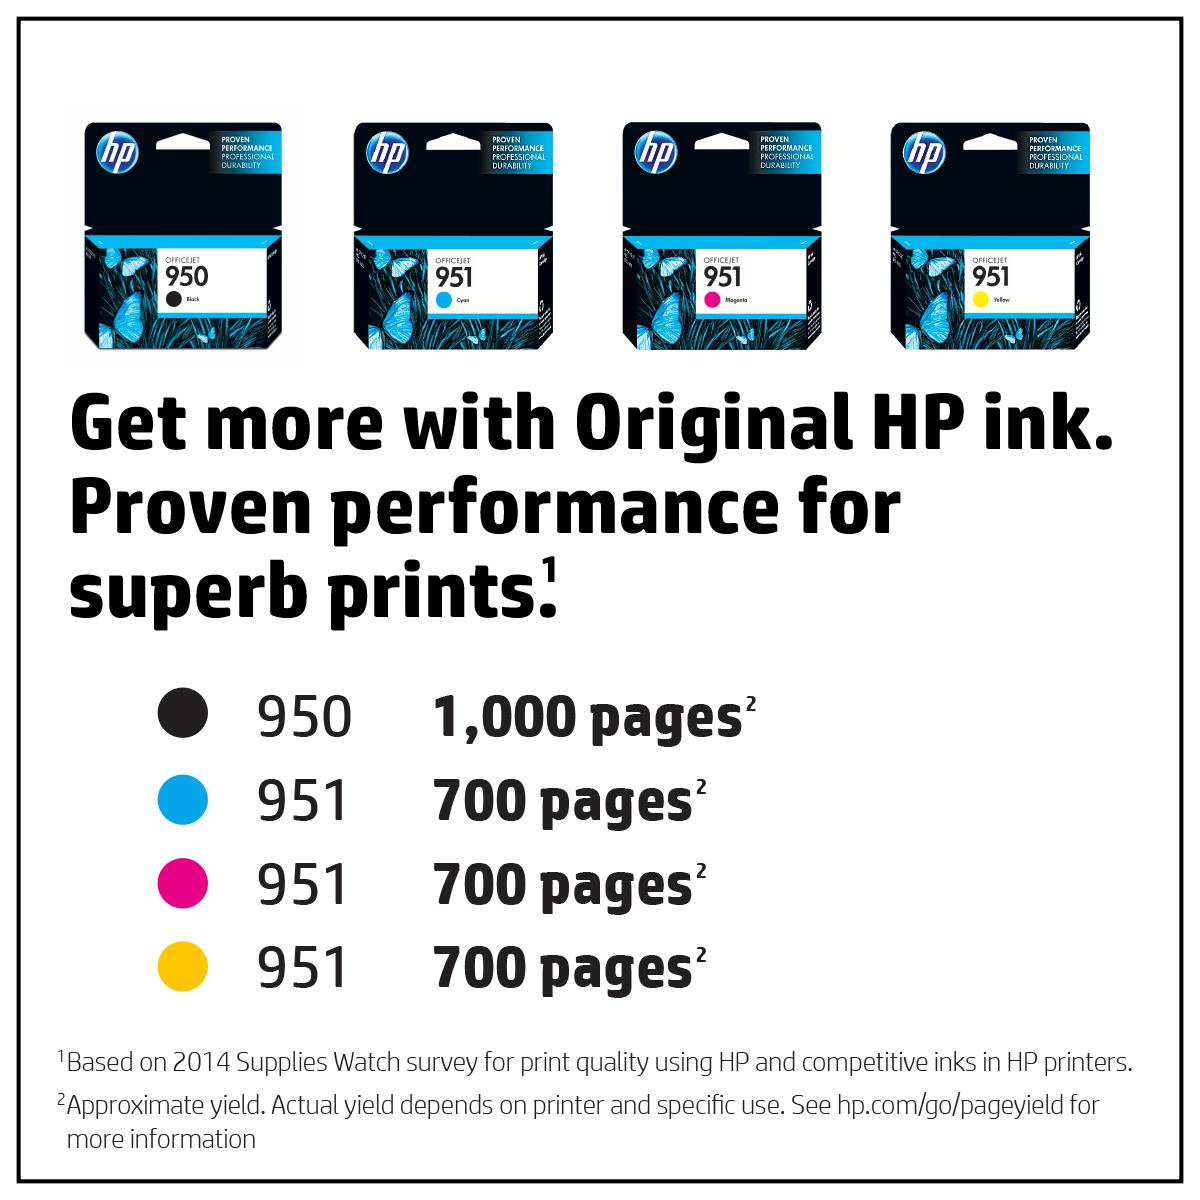 amazon com hp officejet pro 8100 wireless photo printer with